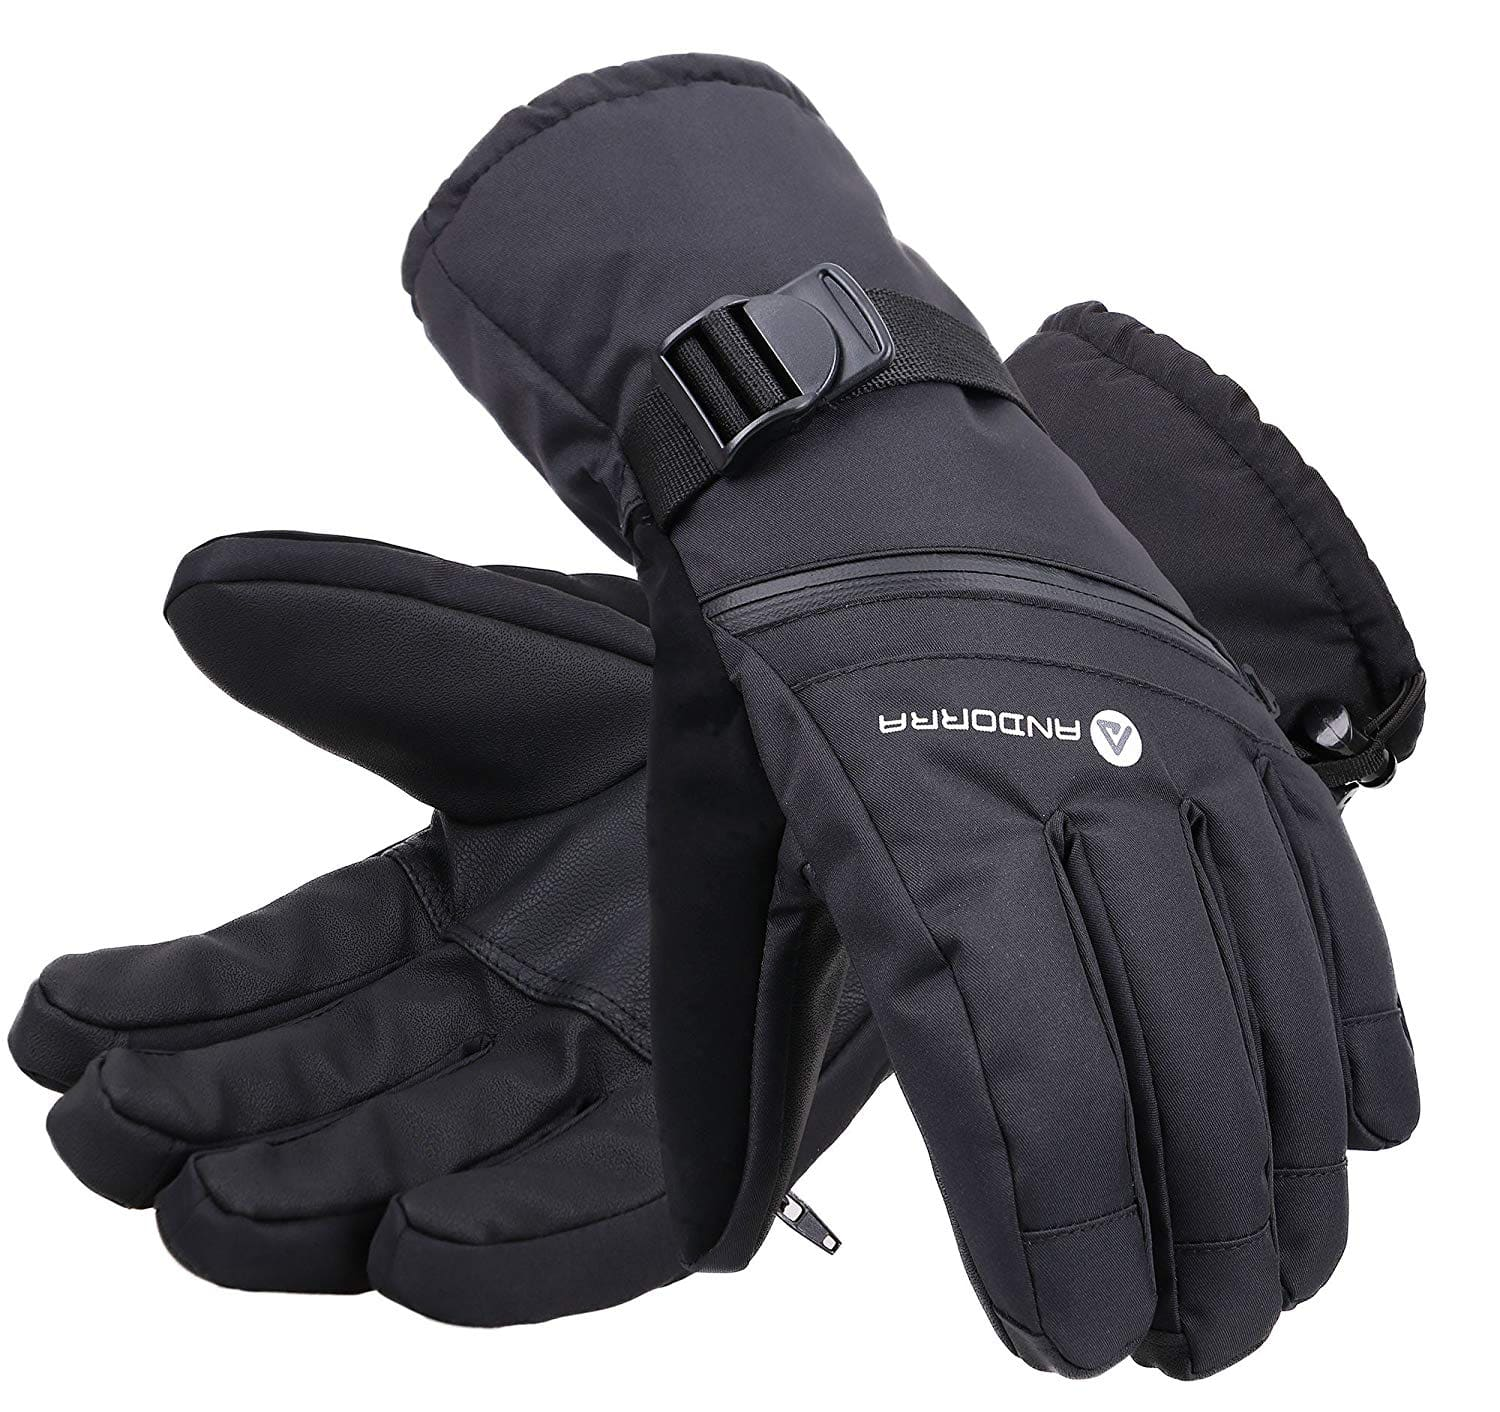 70% off 3M Thinsulate Touchscreen Gloves -: $8.99 + Free Prime Shipping @ Amazon